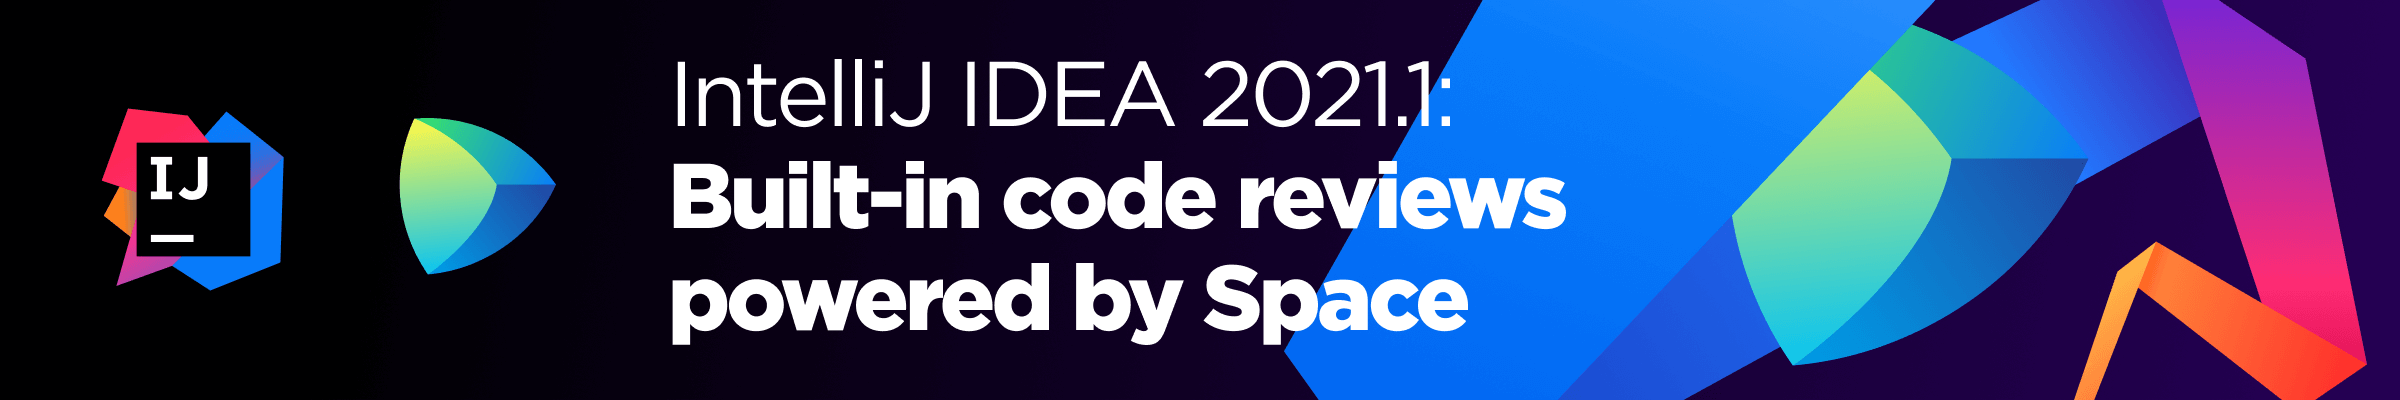 IntelliJ IDEA with built-in code reviews powered by Space